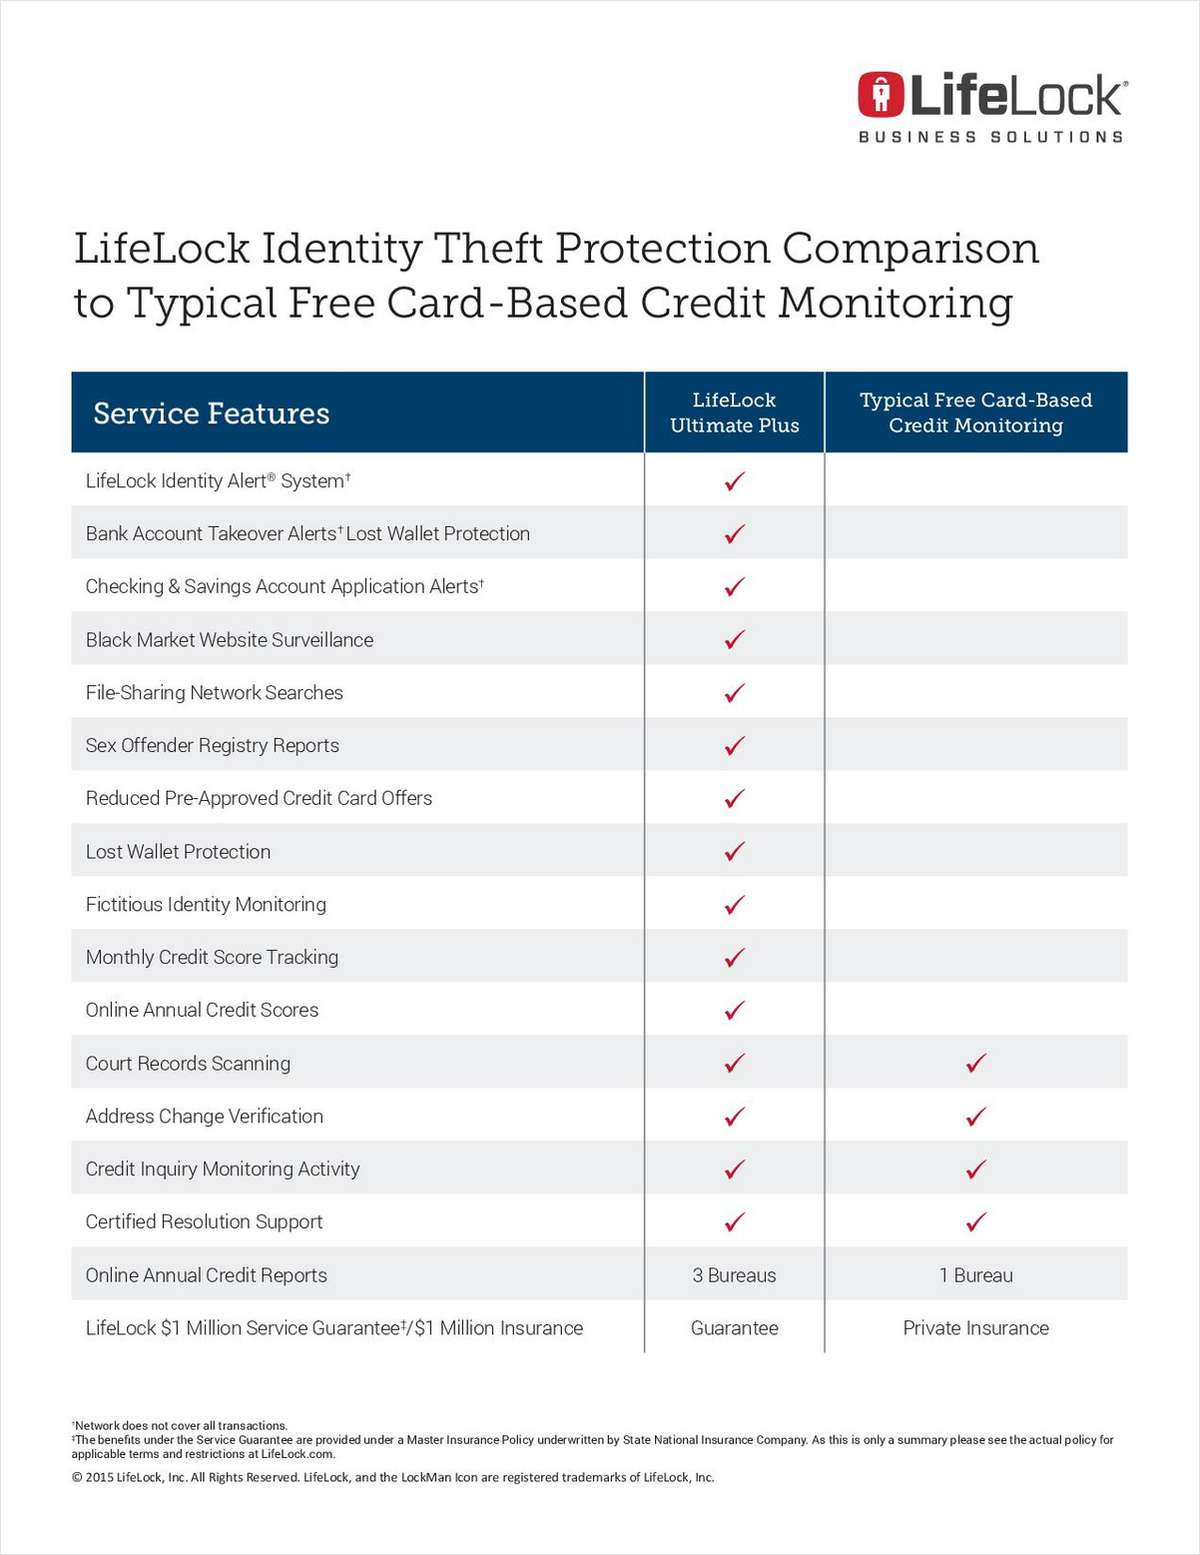 LifeLock Identity Theft Protection Comparison